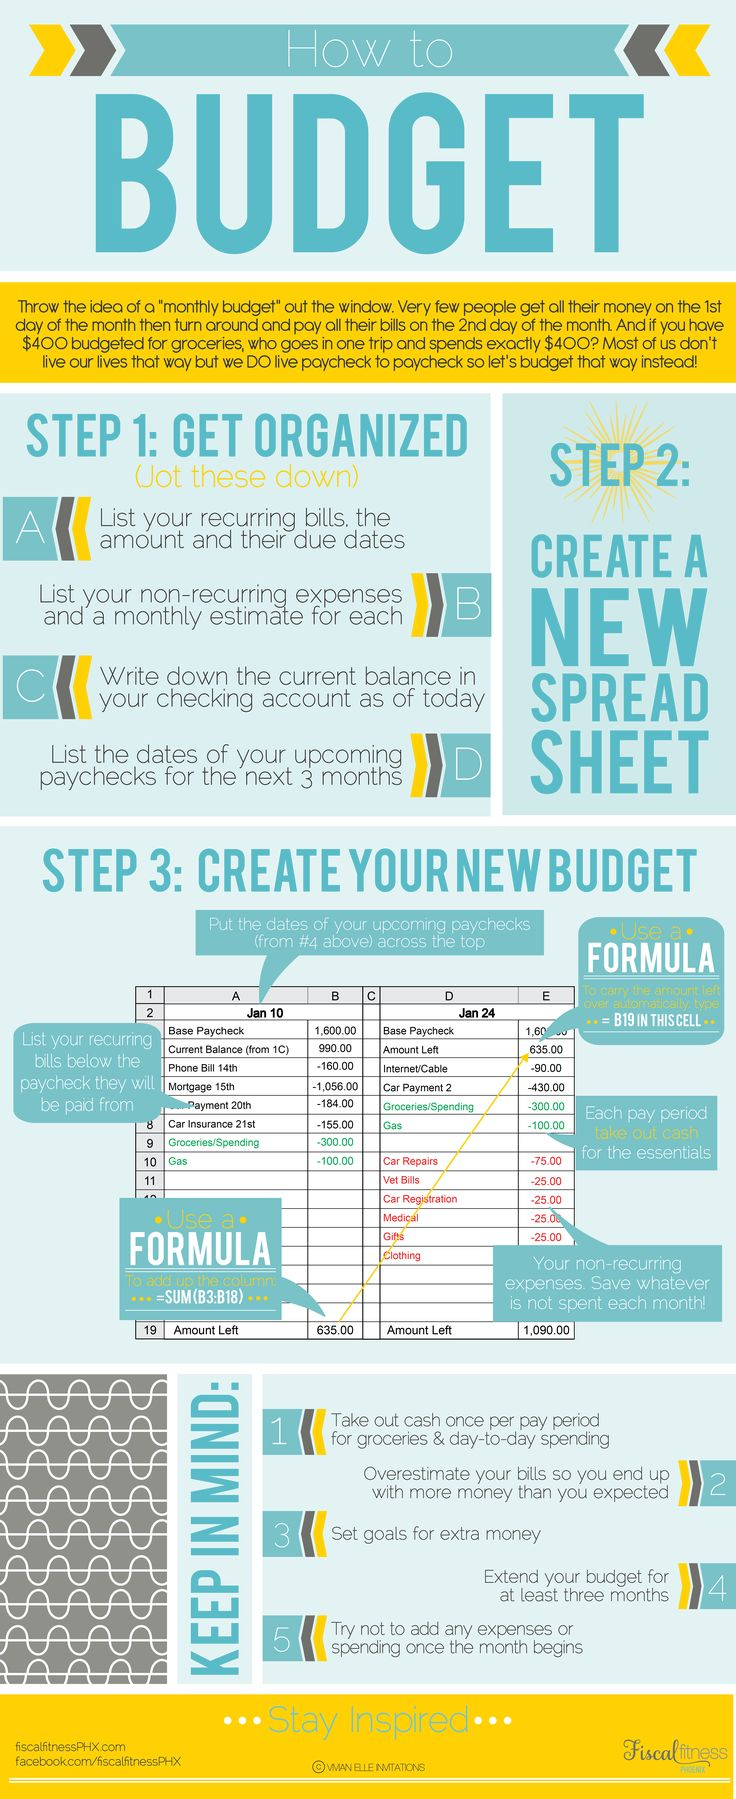 How to Budget - An Infographic - Step by step guide to budgeting